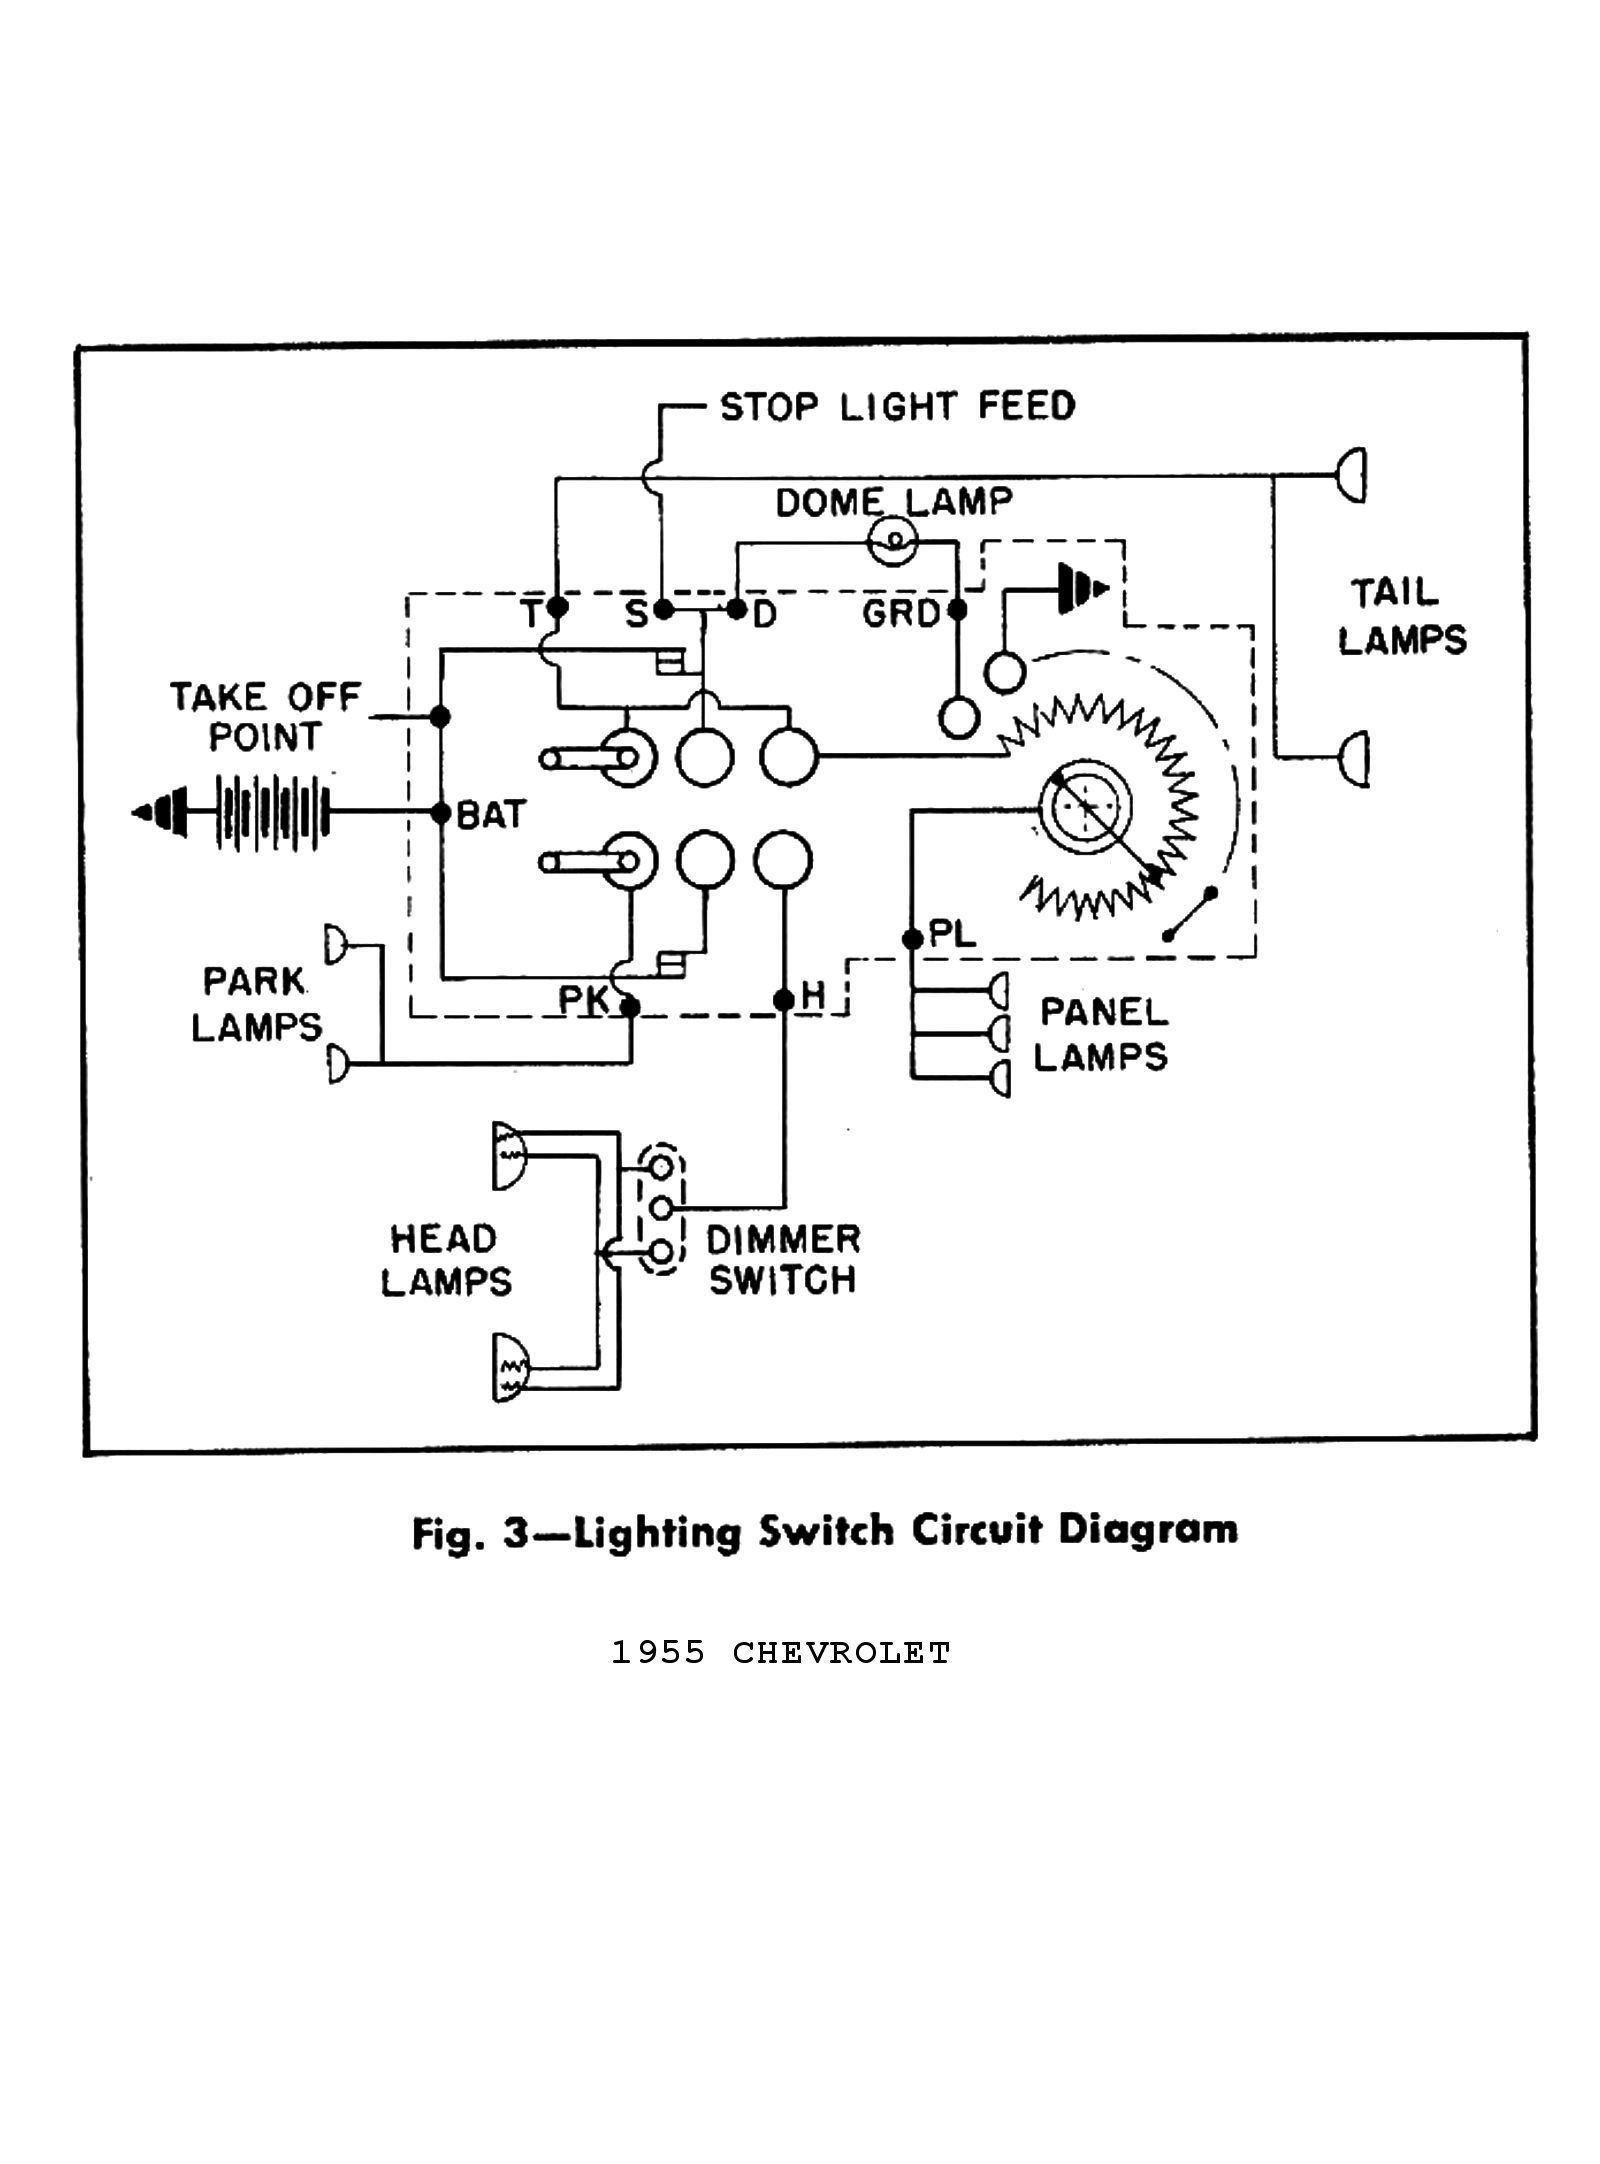 universal ignition switch wiring diagram inspirational 1955 chevy of